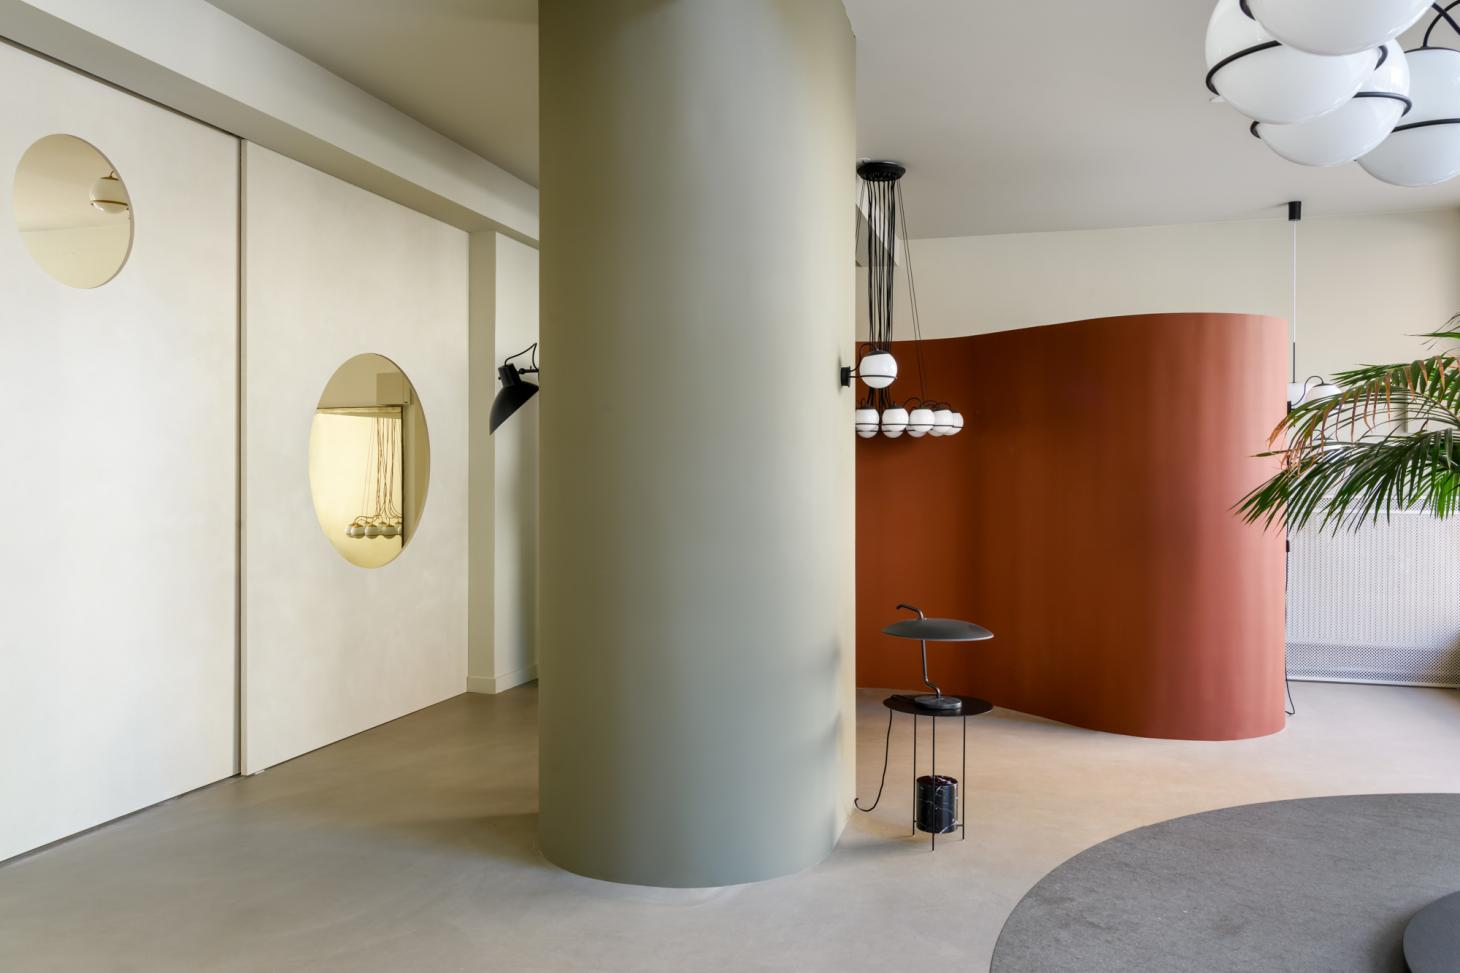 Astep store interior with dark red room divider